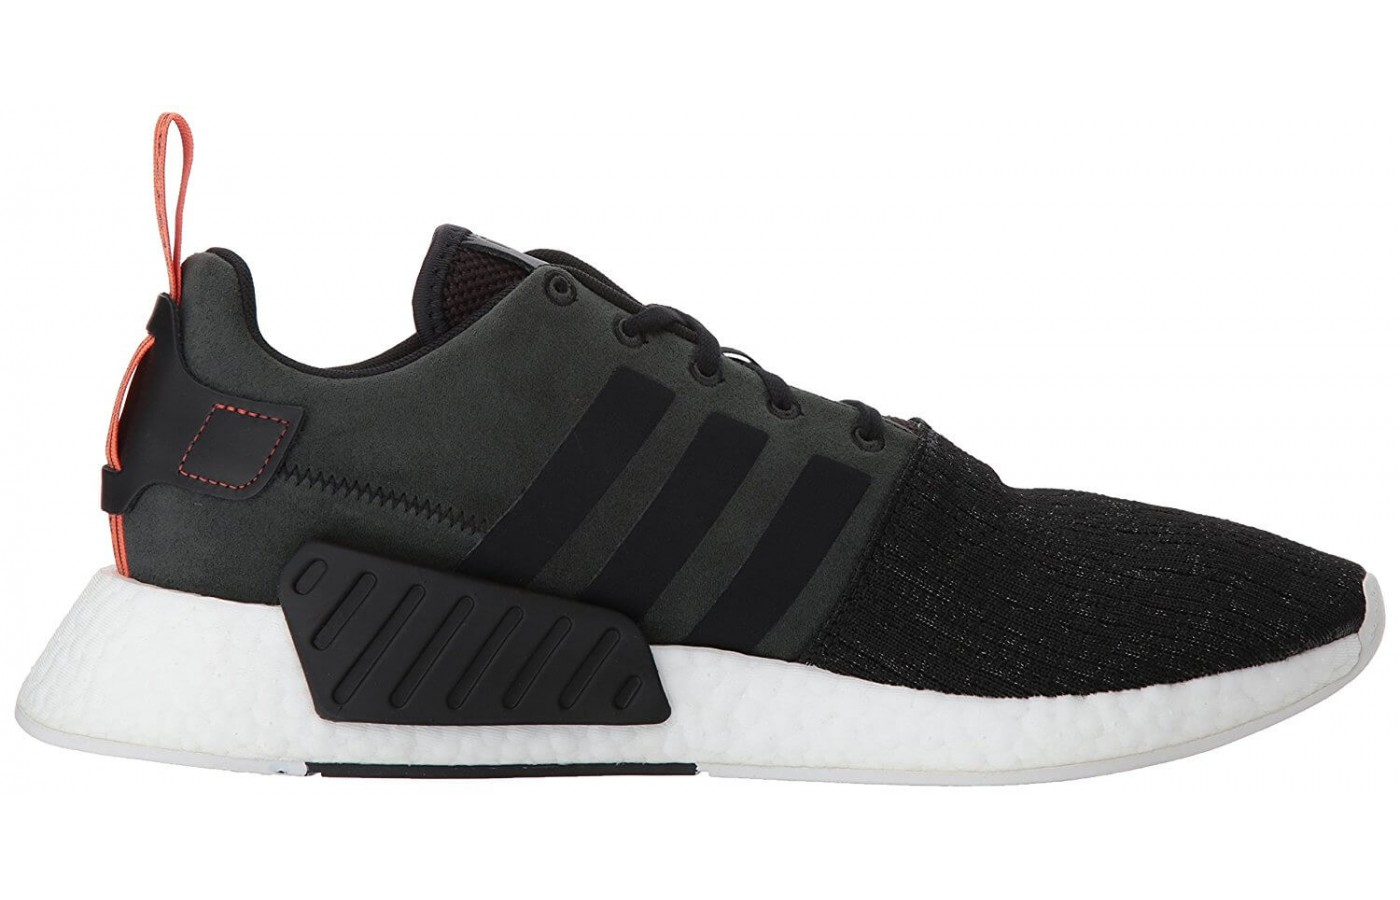 957c9cd8bc681 Adidas NMD R2ed for Performance and Quality - June 2019?